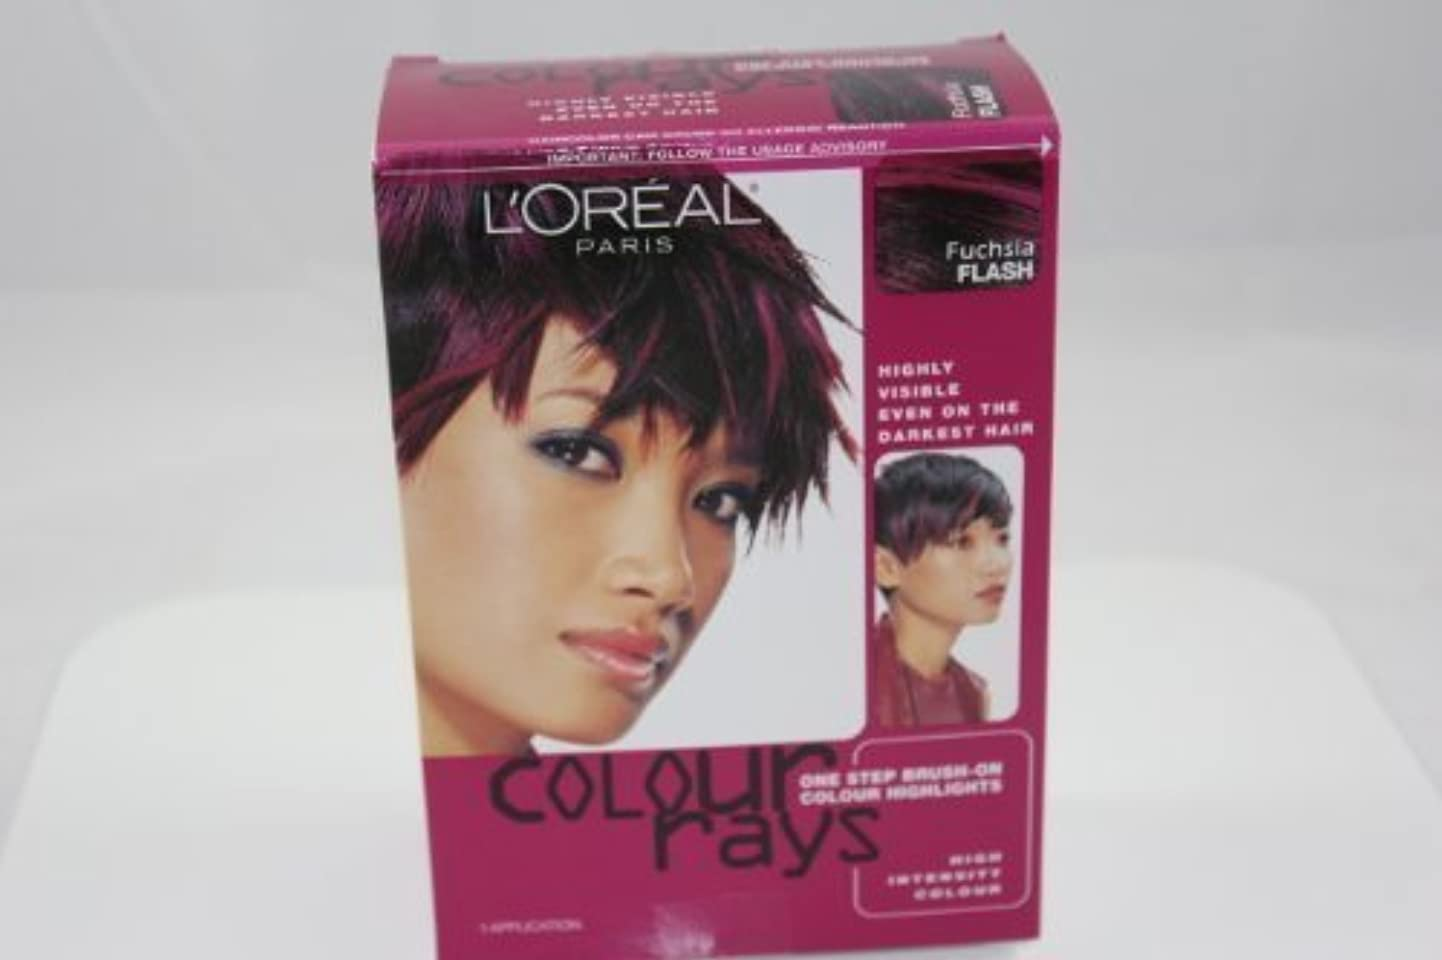 交響曲ディスクチームL'Oreal Paris Colour Rays Hair Color, Fuschia Flash by L'Oreal Paris Hair Color [並行輸入品]